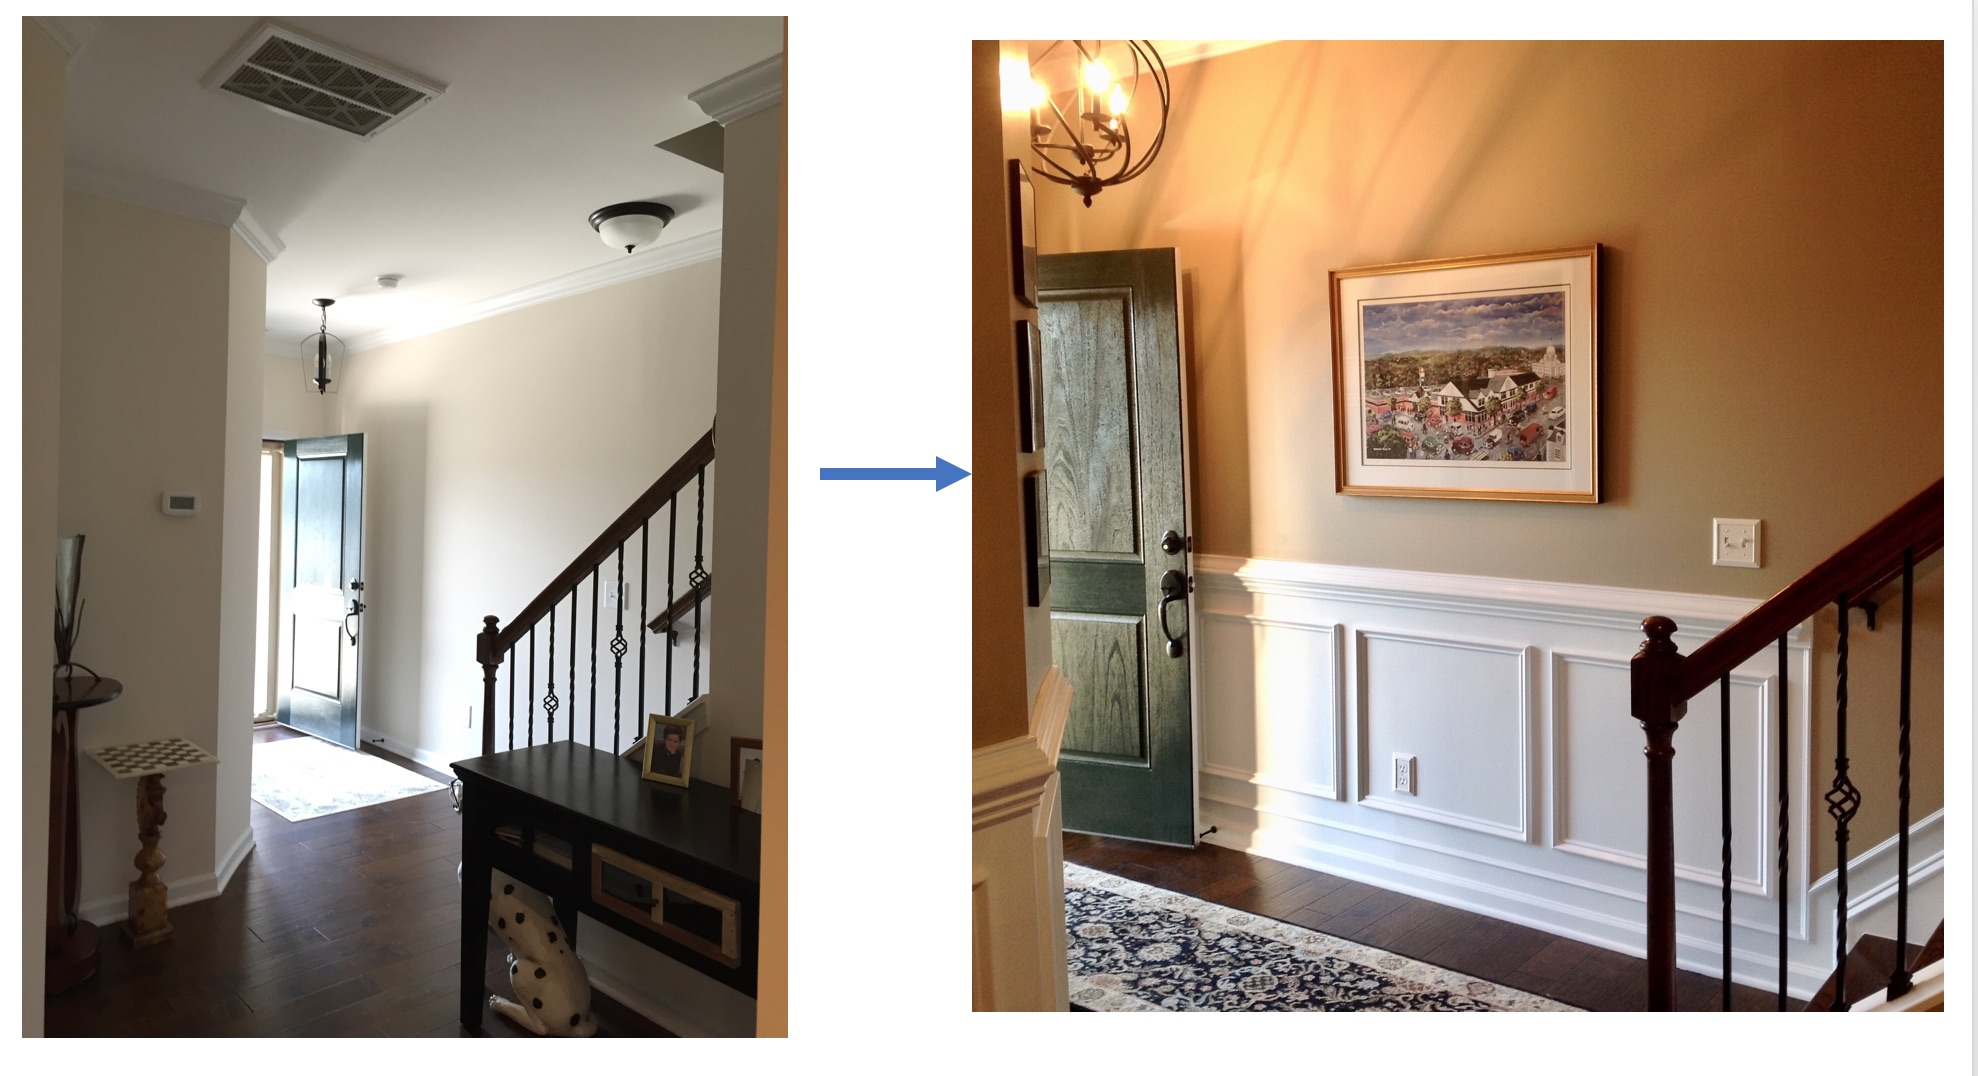 Adding trim, warming up the wall color, art, rug, lighting - all ideas from my design consultation. What a difference!